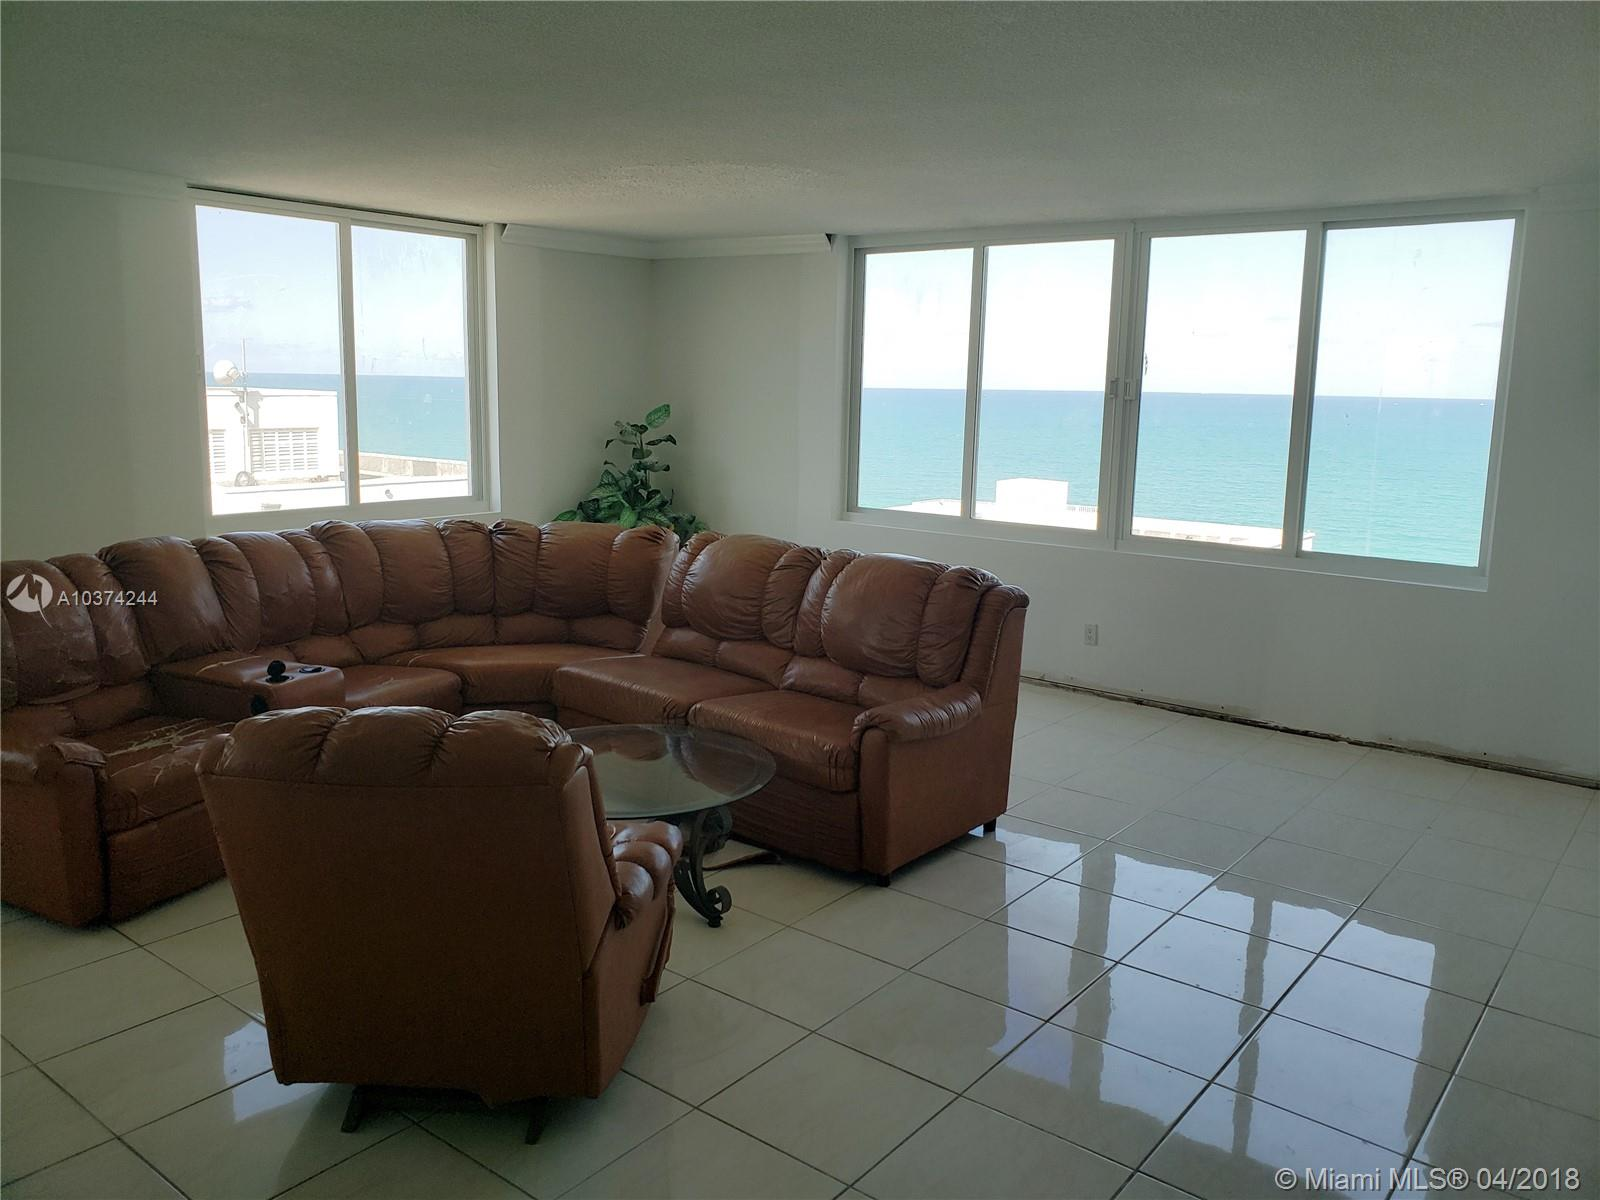 Spectacular Direct Ocean & Intracoastal Views From This Large 3 Bedroom With The Potential To A 4 Bedroom, Now A Large Formal Dinning Room, Spacious Living Room And Bedrooms, 2 Bath, Ceramic Floors, 2 Enclosed Balconies, Lots Of Closets, Good Condition. Oceanside Building, 24 Hrs. Security, All Amenities Included In Maintenance, Gym, Tennis Court, Social Room, Restaurant, Mini-Market, Dry Cleaning And More!  *** Electric, Water & Basic Cable Included *** Building Is Under A Complete Restoration Project Including New Windows *** Special Assessment Paid By Seller At Closing ***